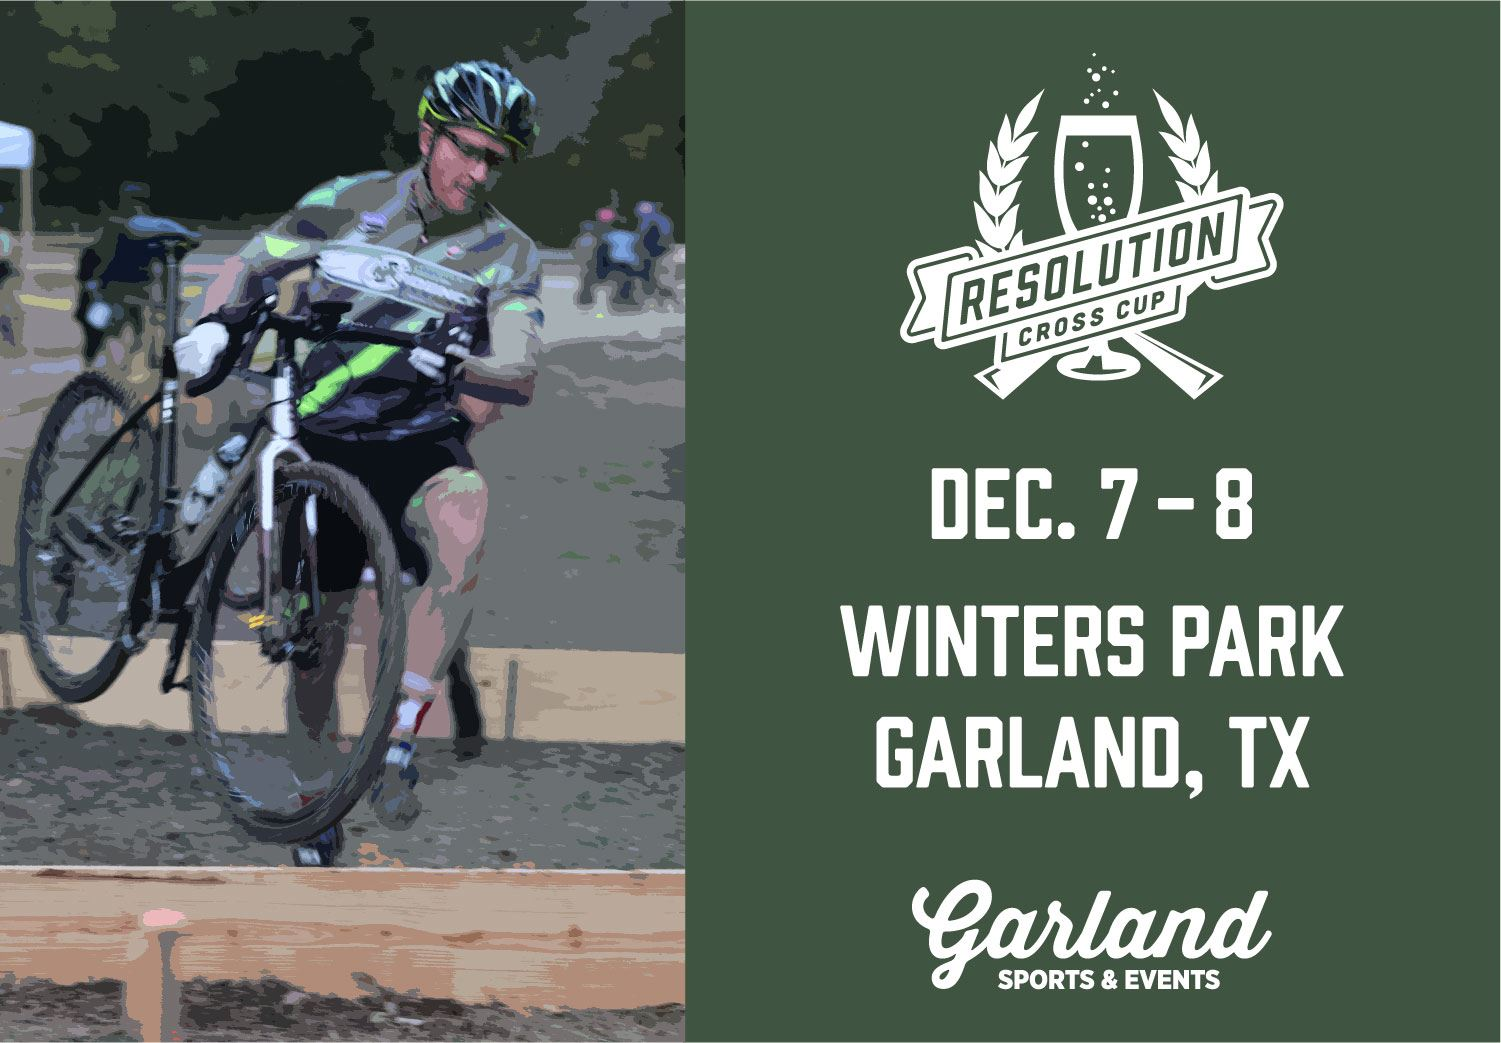 Cyclocross' Resolution Cross Cup comes to Winters Park Dec. 7 and 8